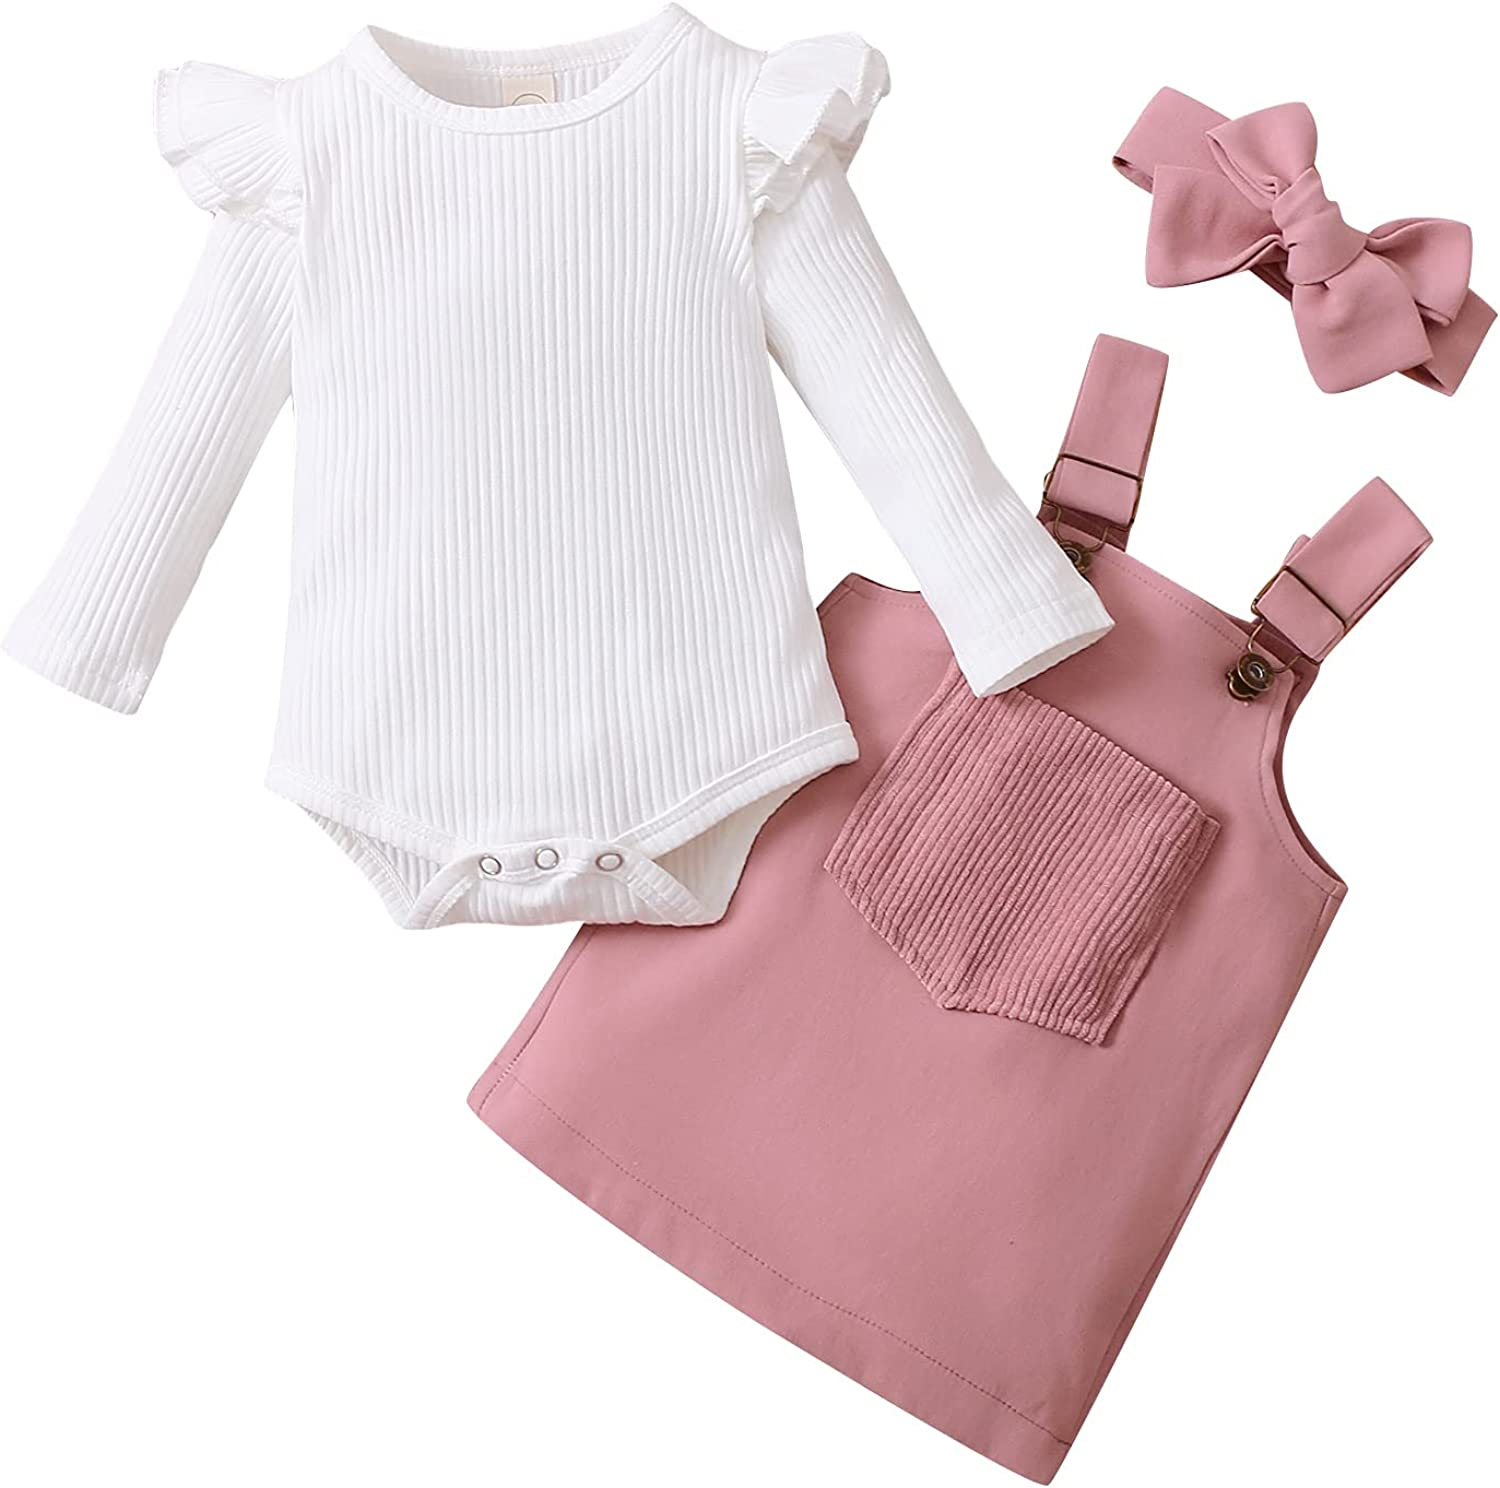 3Pcs Infant Baby Girls Outfit Ruffle Long Sleeve Romper + Front Pocket Suspender Skirt + Headband Clothes Set